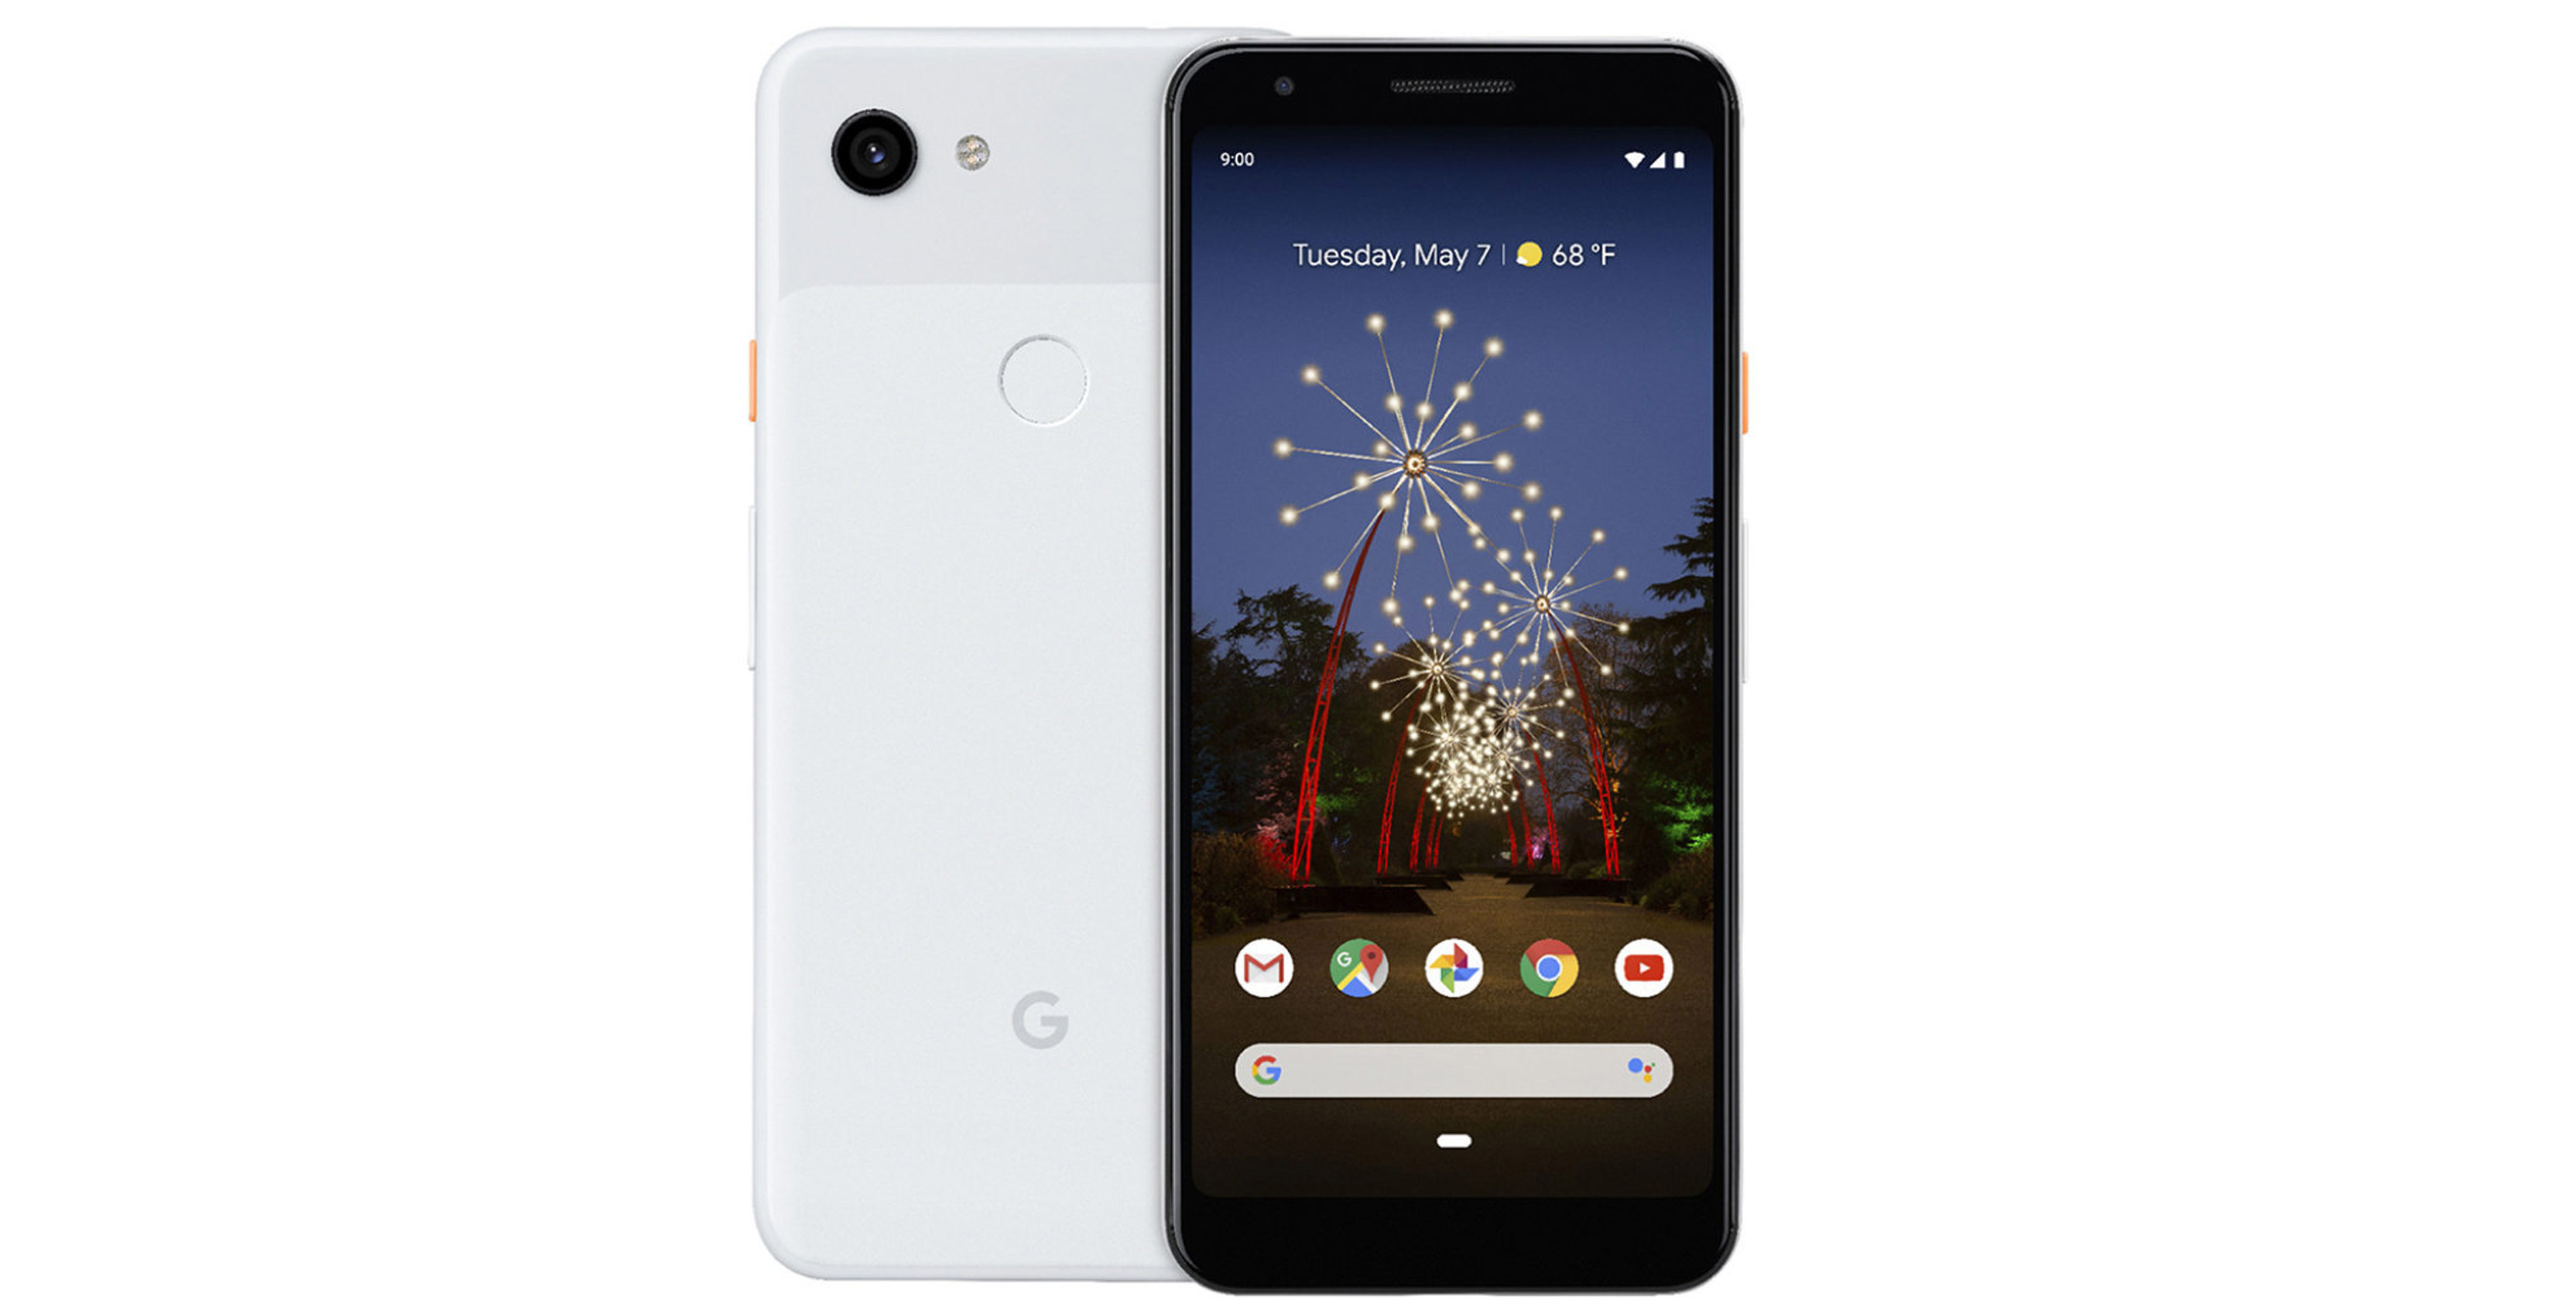 Google's upcoming Pixel 3a smartphone